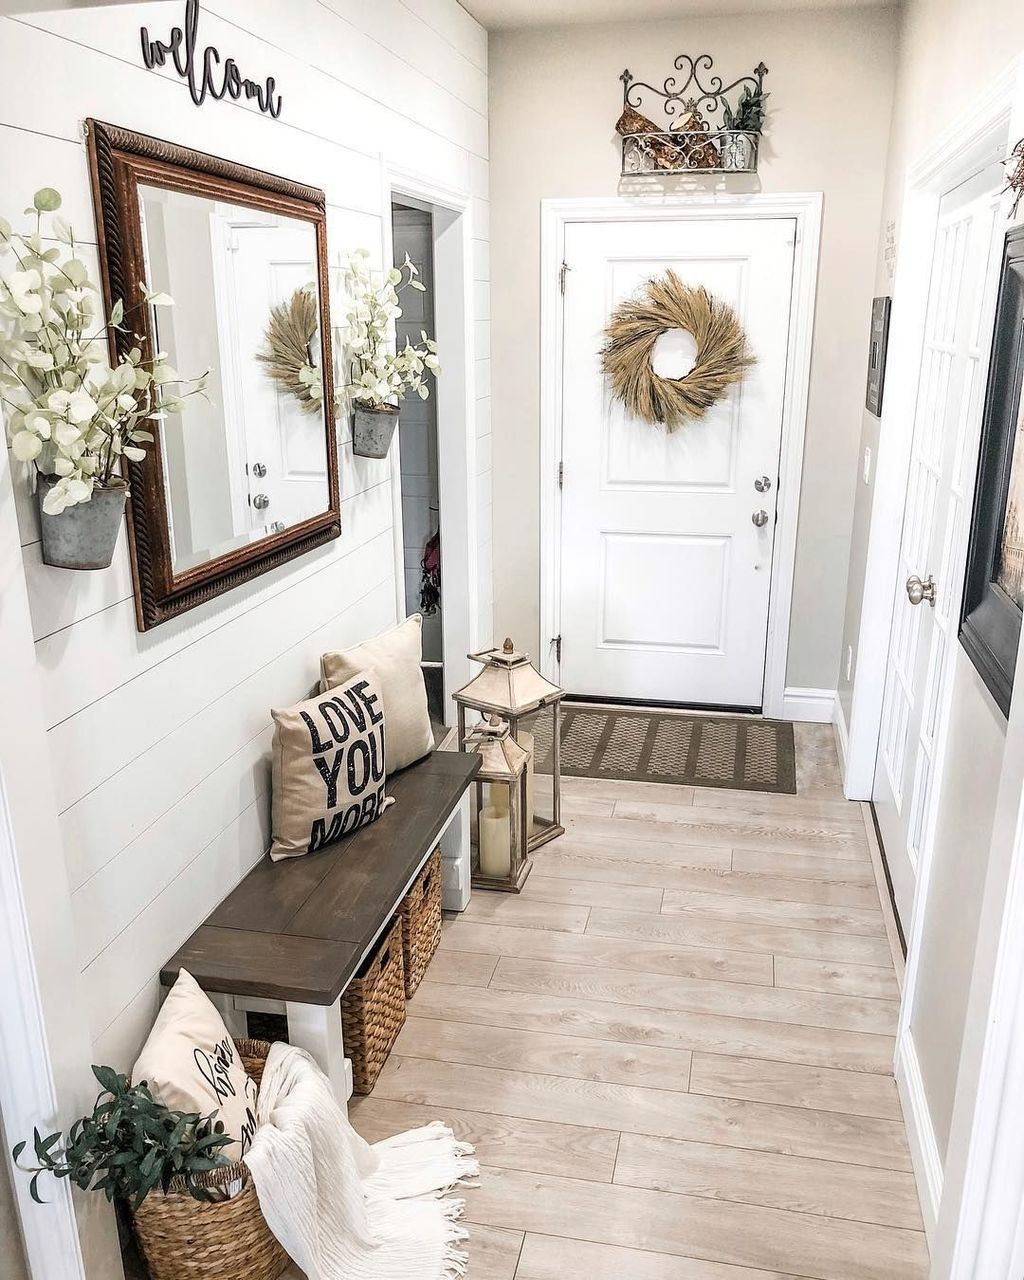 20+ Fabulous Hallway Decor Ideas For Home #hallwaydecorations